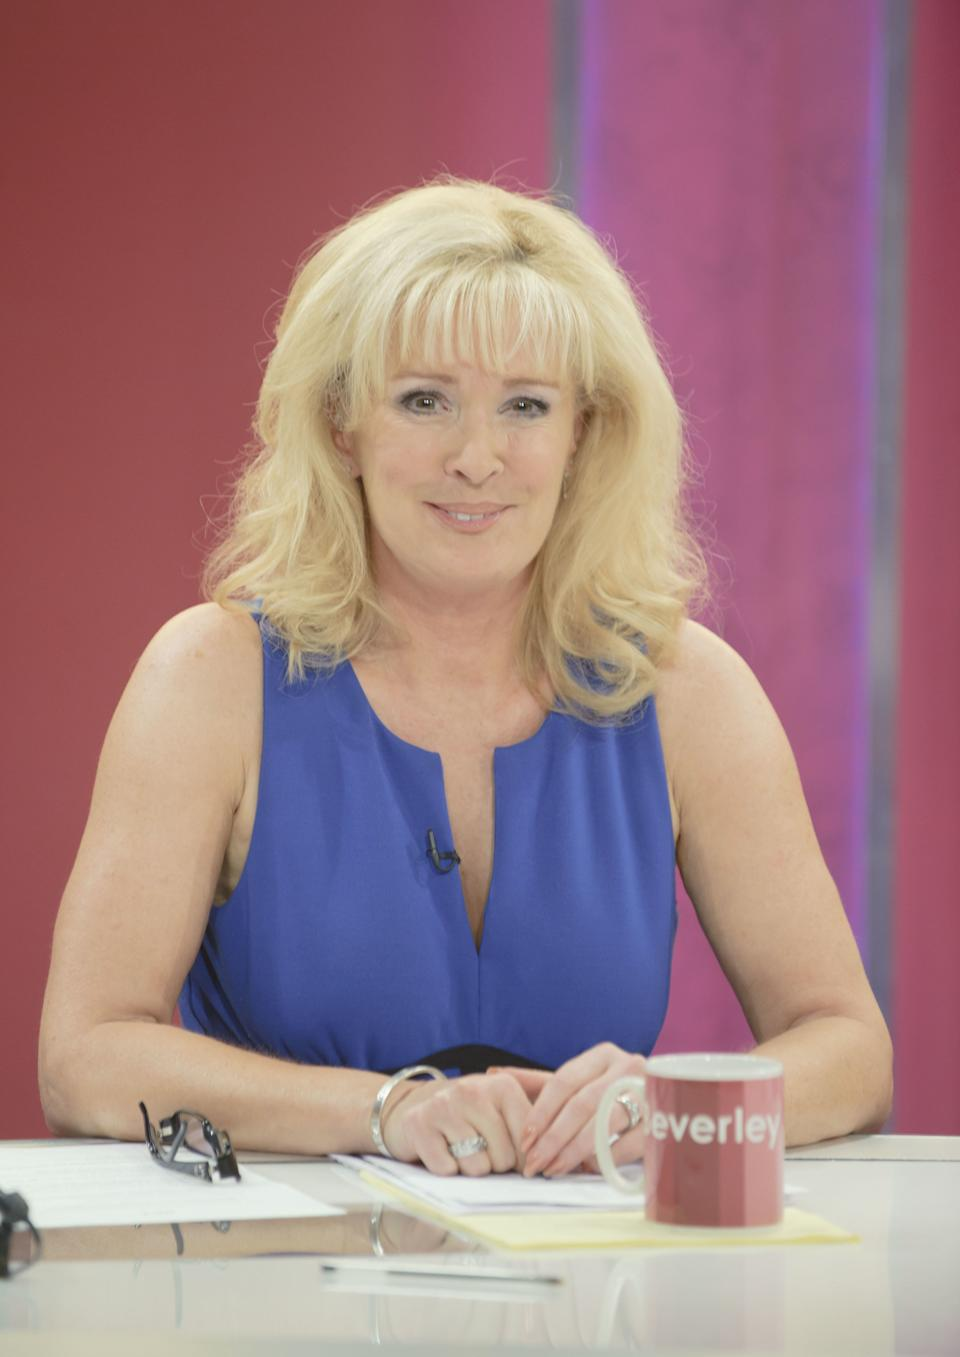 During one of her many breaks from Coronation Street, Beverley (aka Liz McDonald) took up a seat behind the famous desk in 2010.